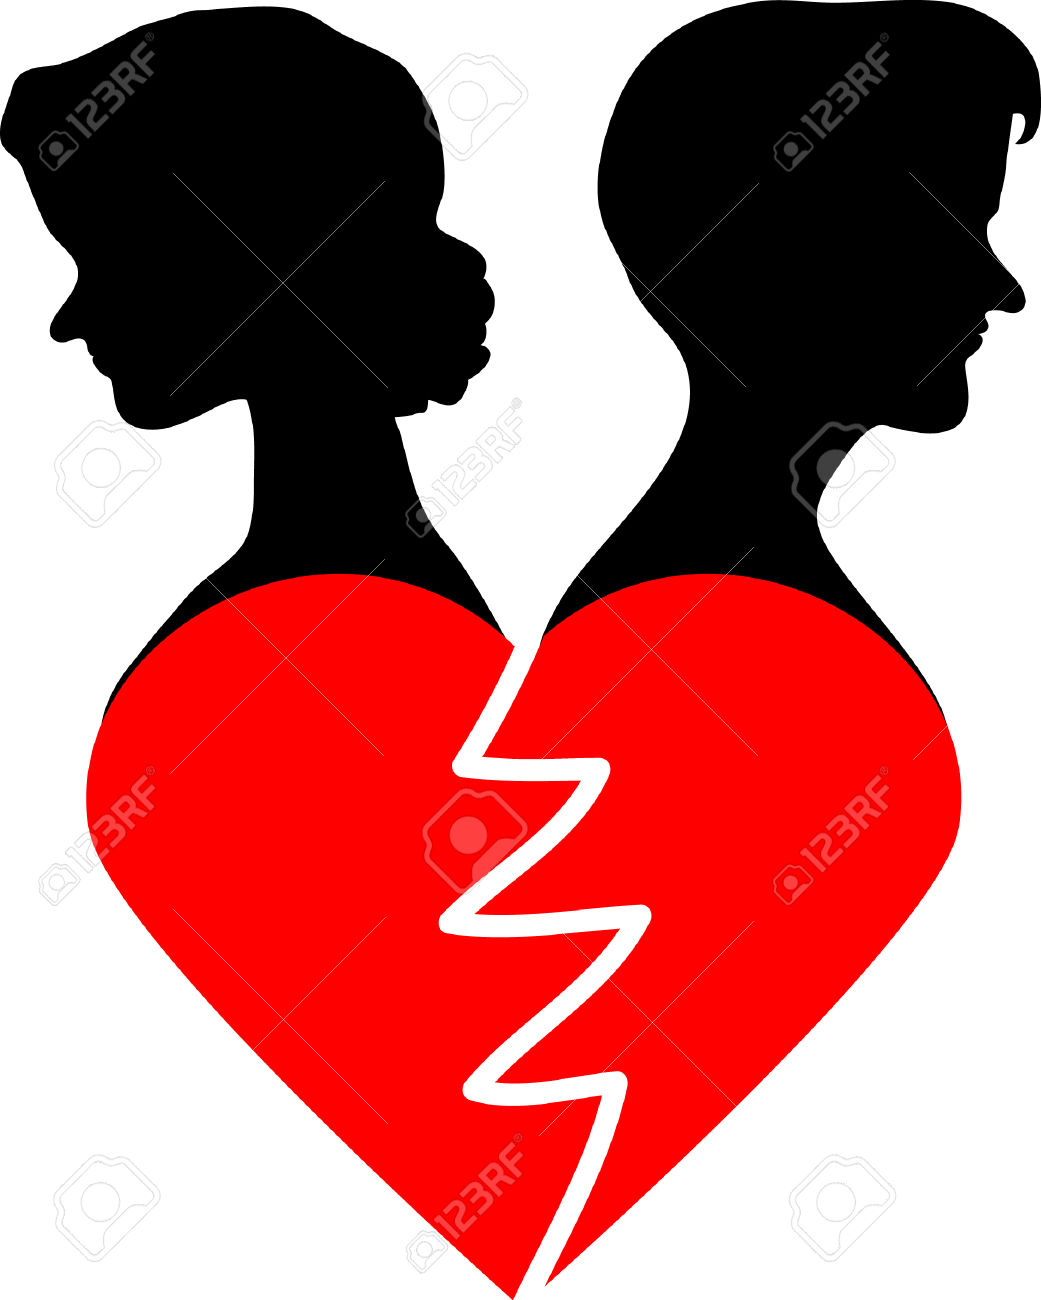 Broken hearted clipart 2 » Clipart Station.